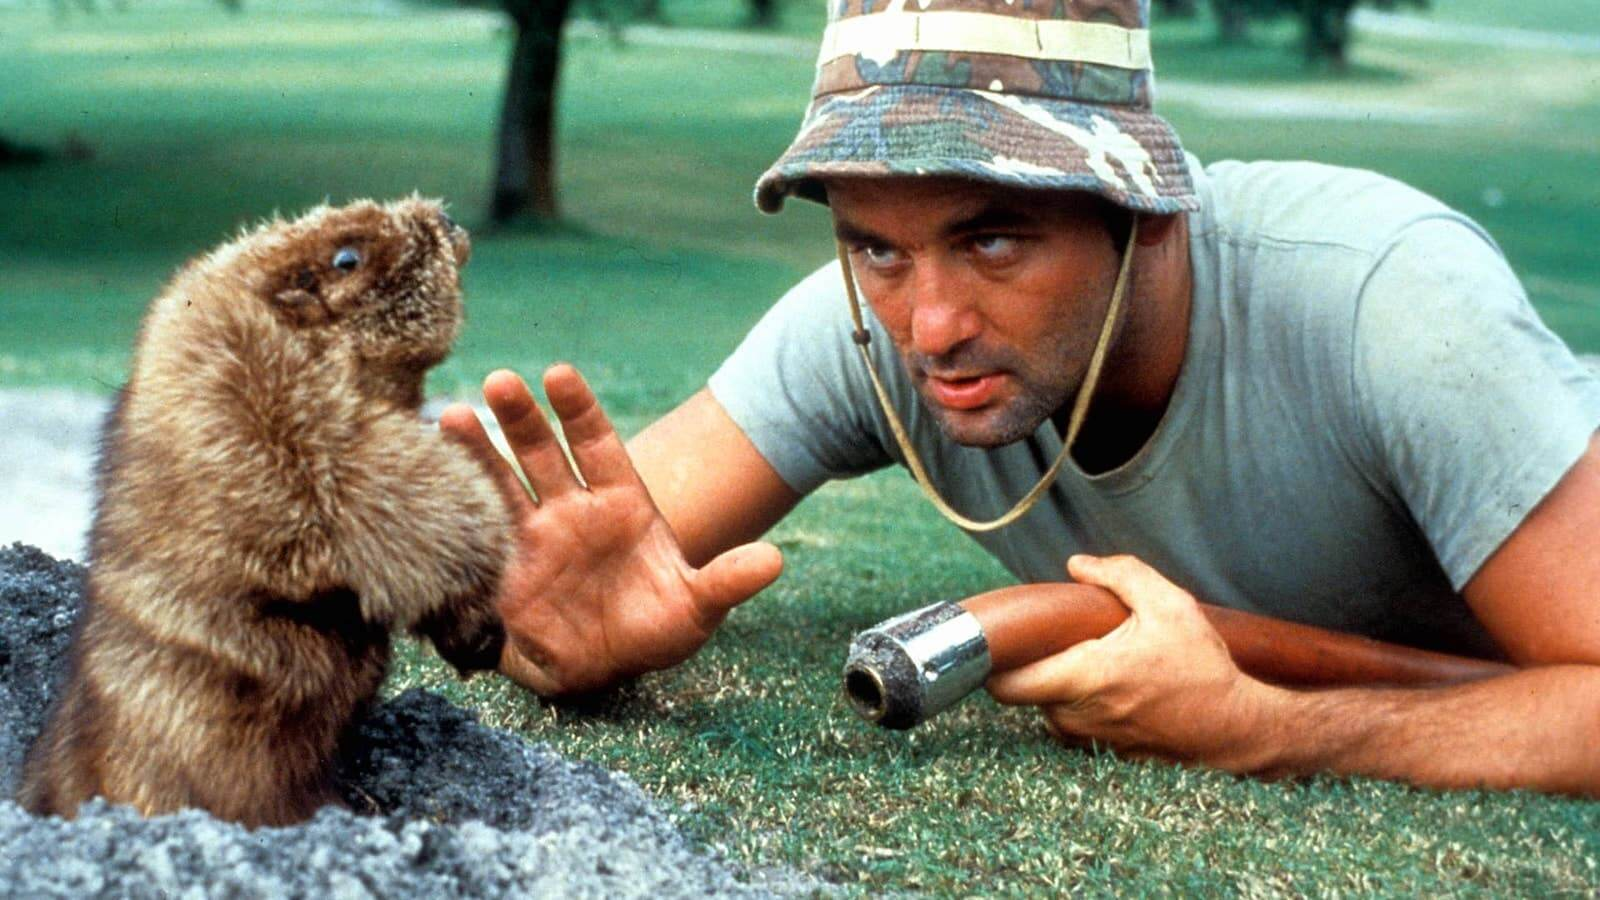 Best Comedy Movies - Caddyshack